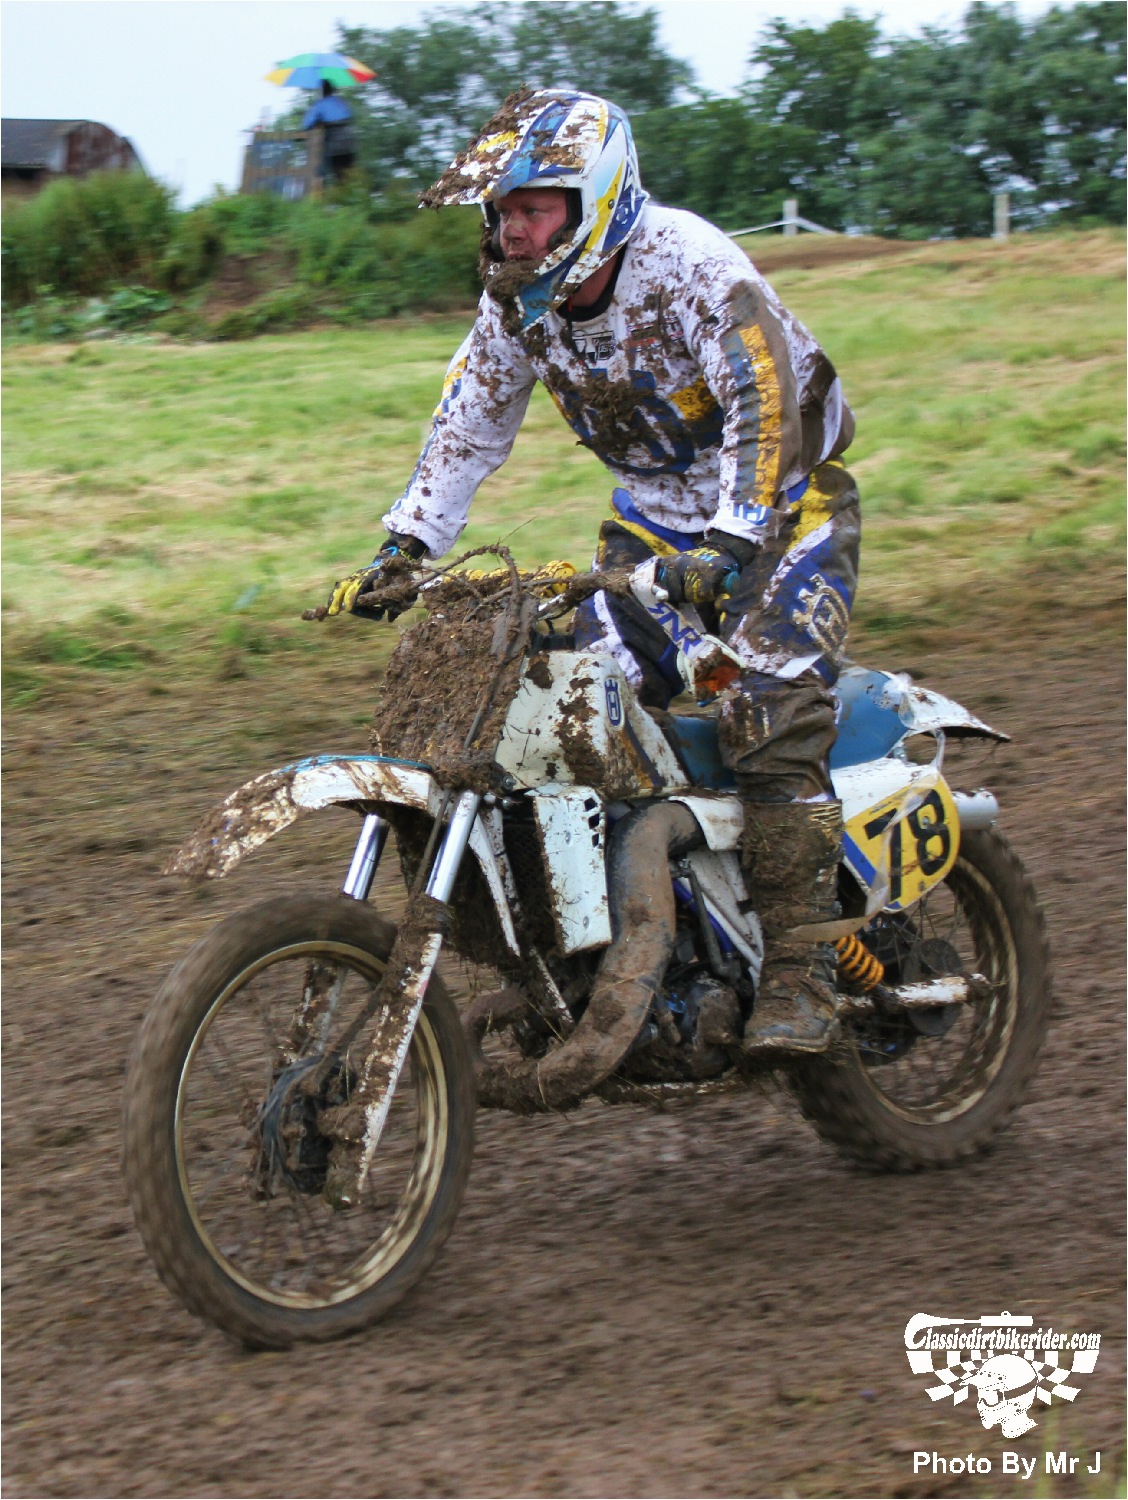 king of the castle 2015 photos Farleigh Castle twinshock motocross classicdirtbikerider.com 77